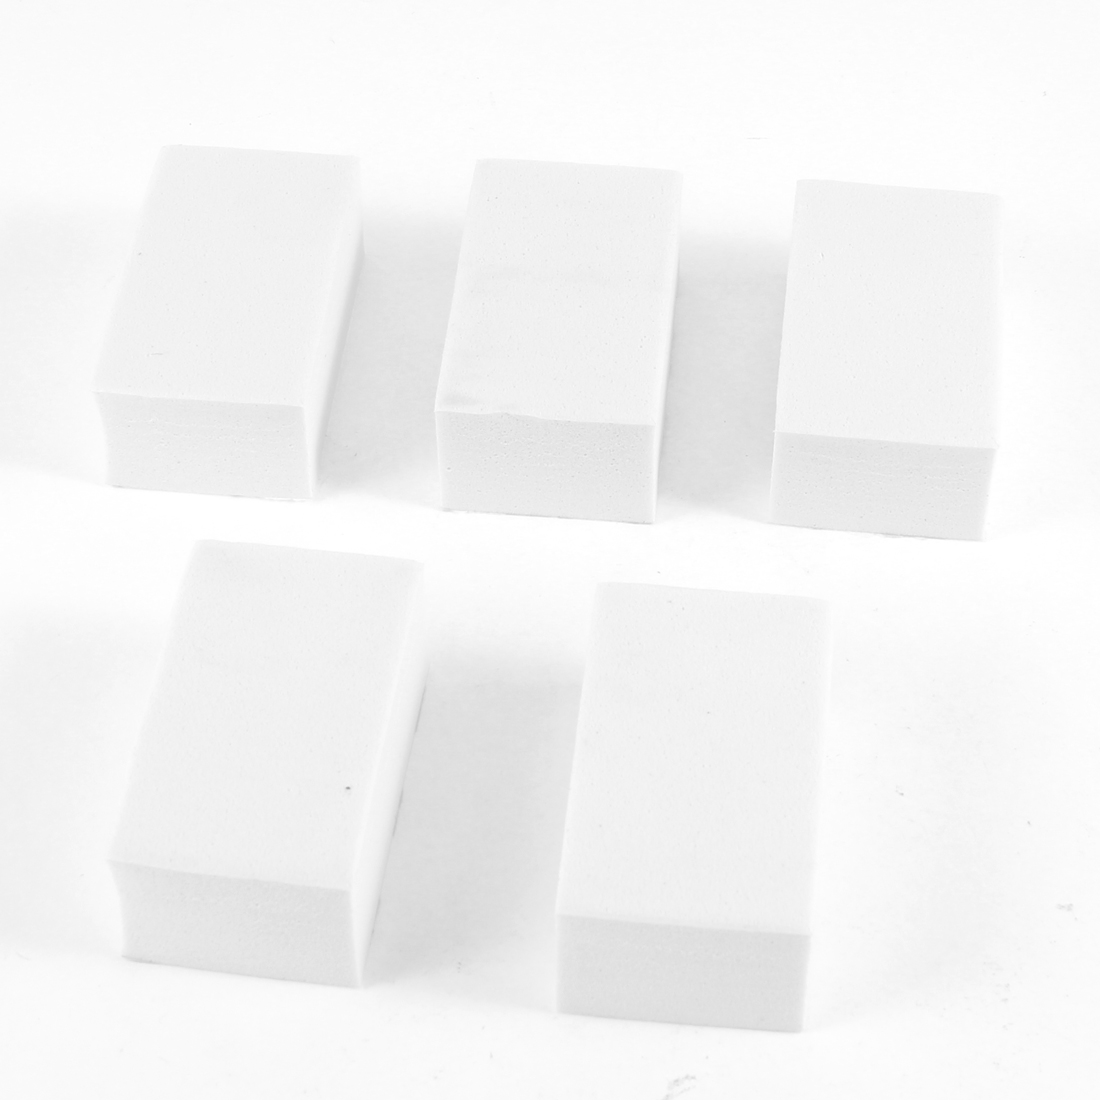 White Foam Cars Auto Door Defender Protector Trim Guard Stickers 5 Pcs